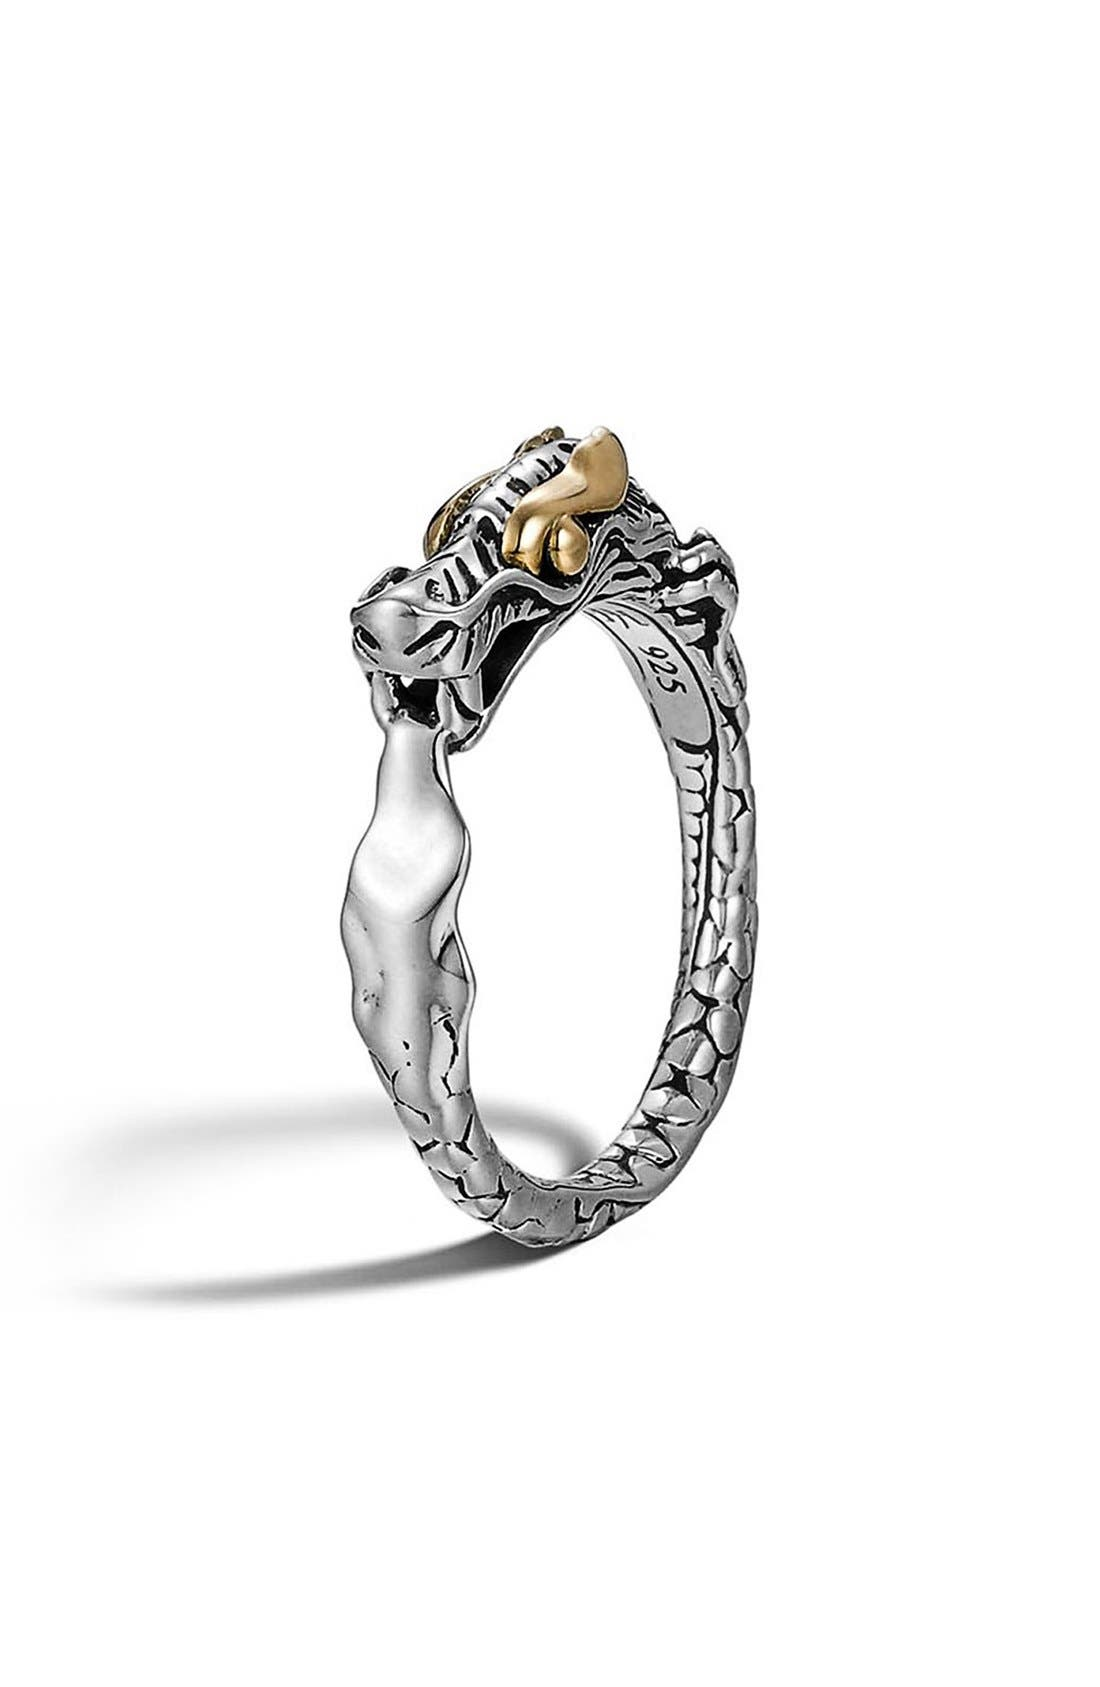 'Legends' Slim Dragon Ring,                         Main,                         color, Silver/Gold